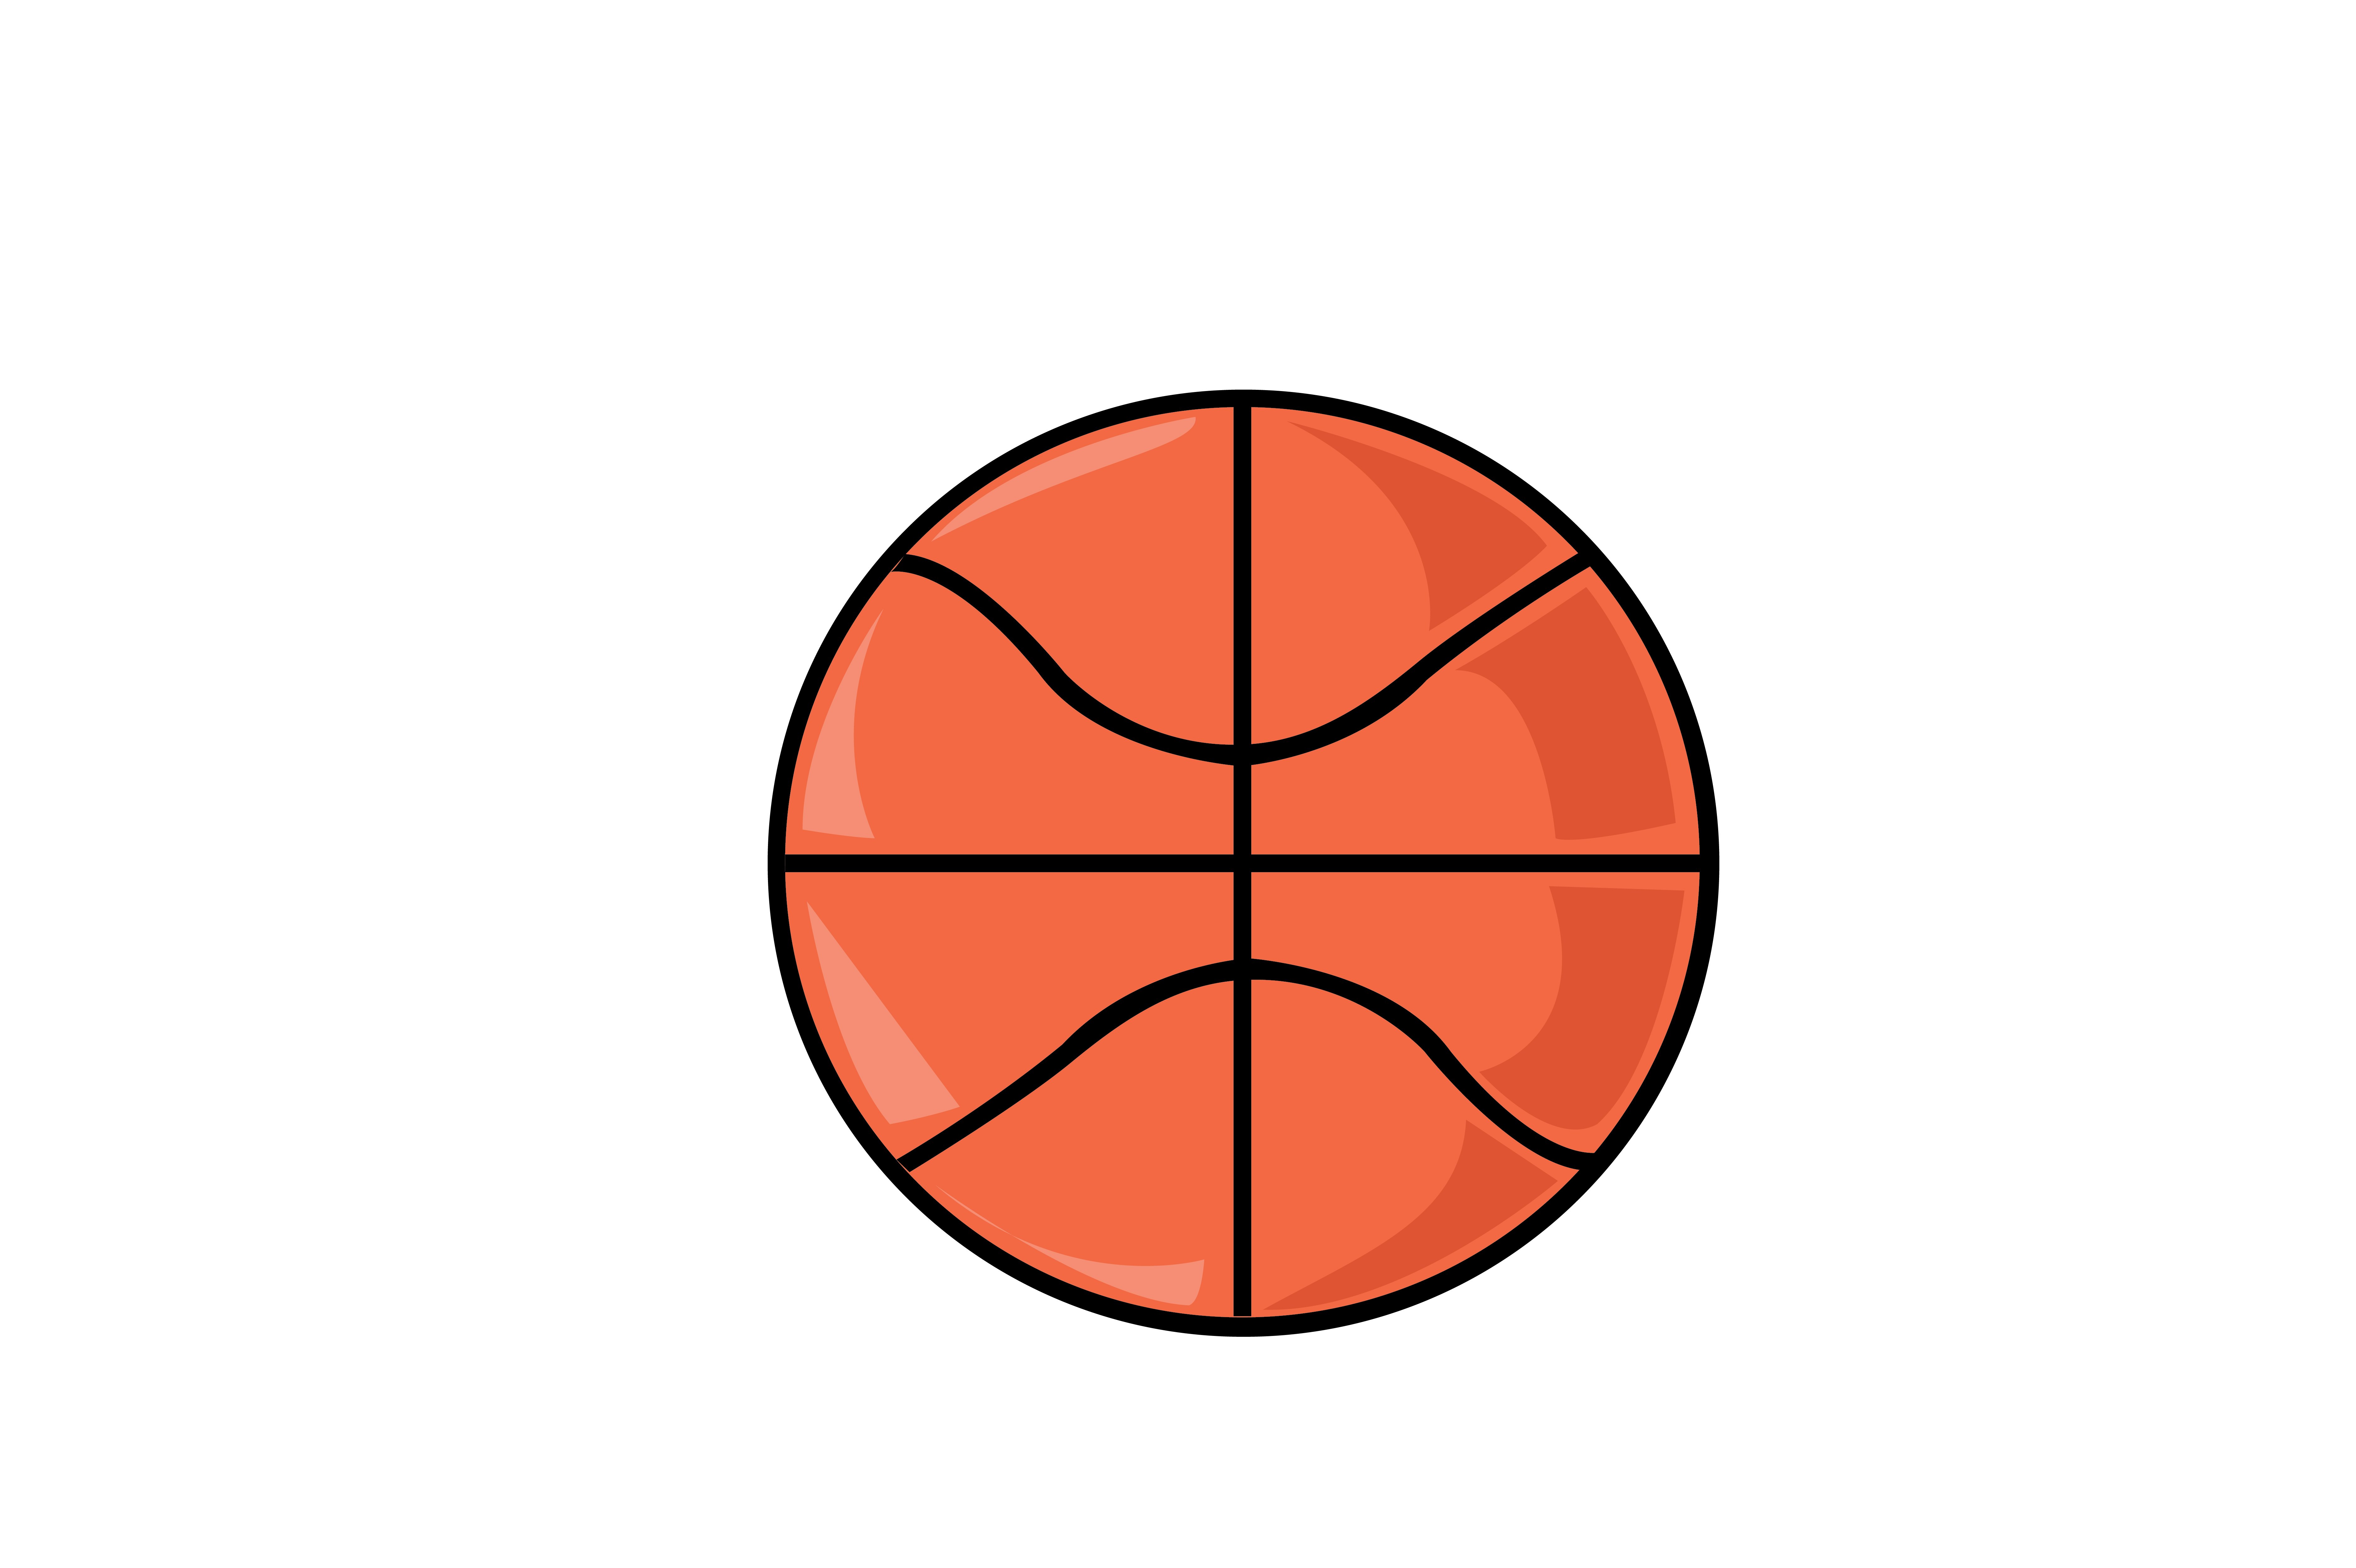 Download Free Basketball Graphic By Rfg Creative Fabrica for Cricut Explore, Silhouette and other cutting machines.